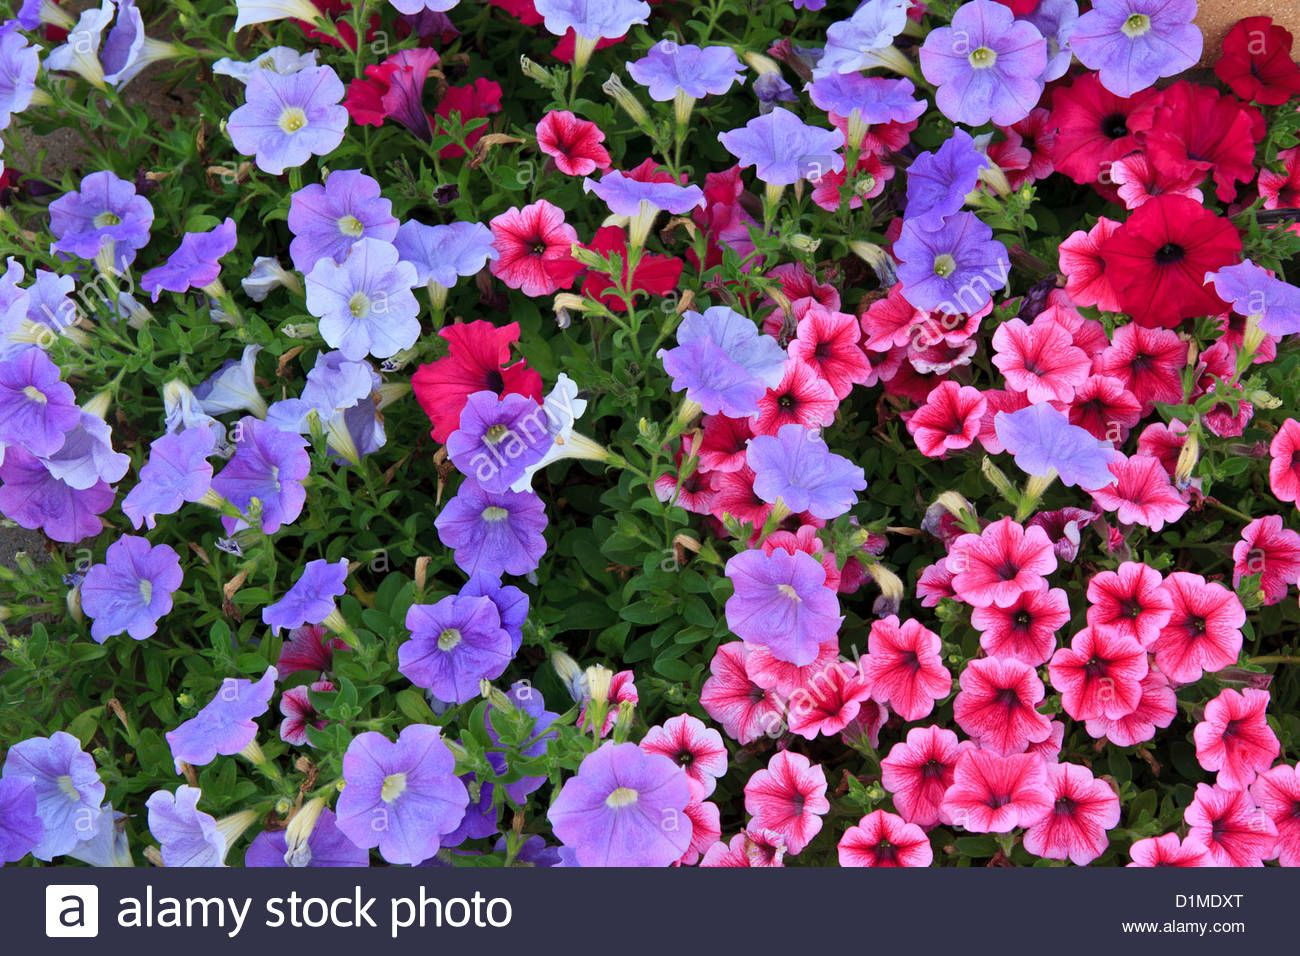 Pictures Of Petunias In Flower Beds Google Search Petunias Flower Beds Flowers